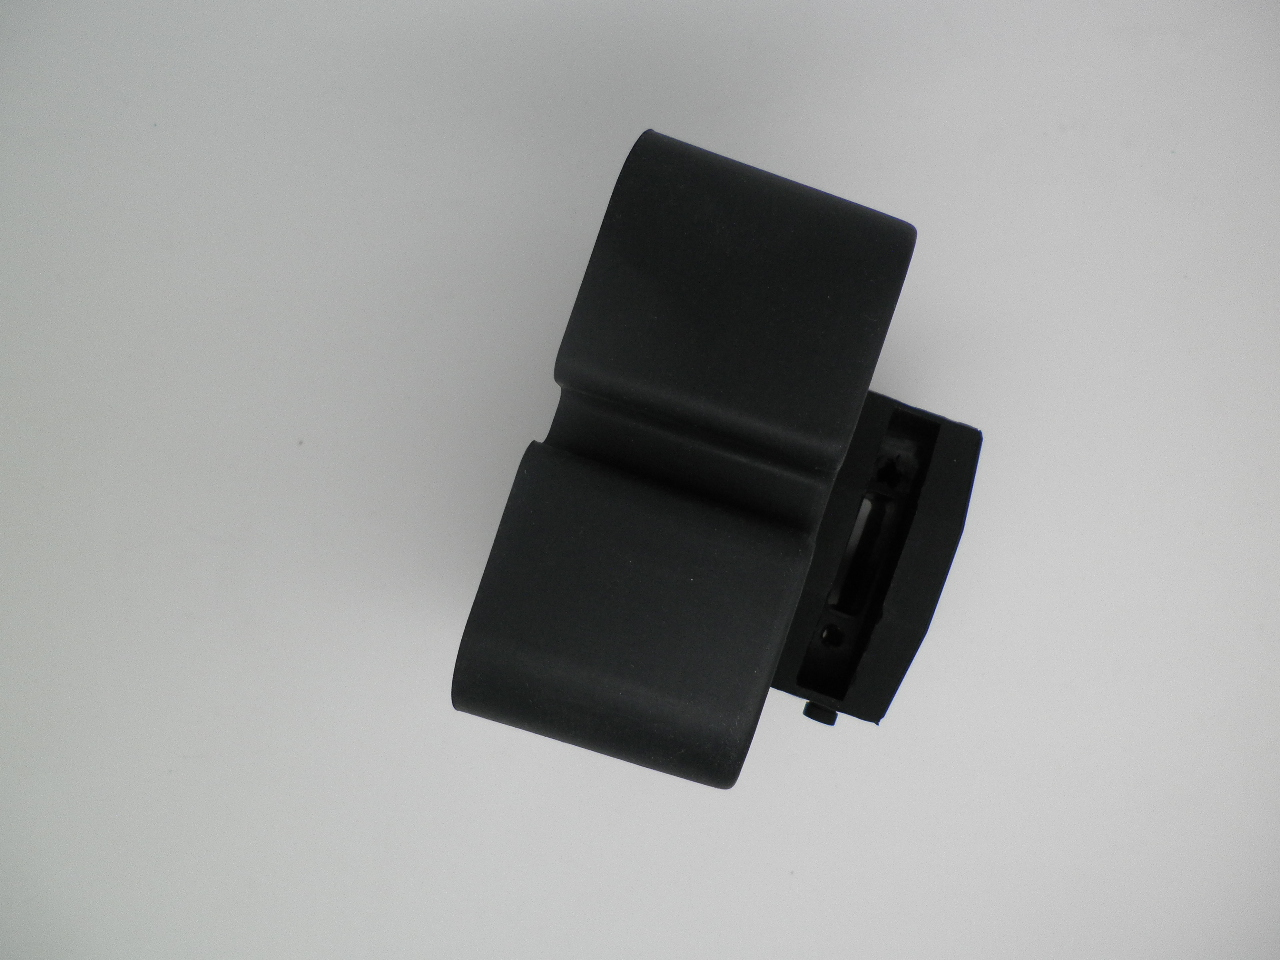 http://www.refinehksilicone.cn/data/images/product/20180417110750_364.JPG